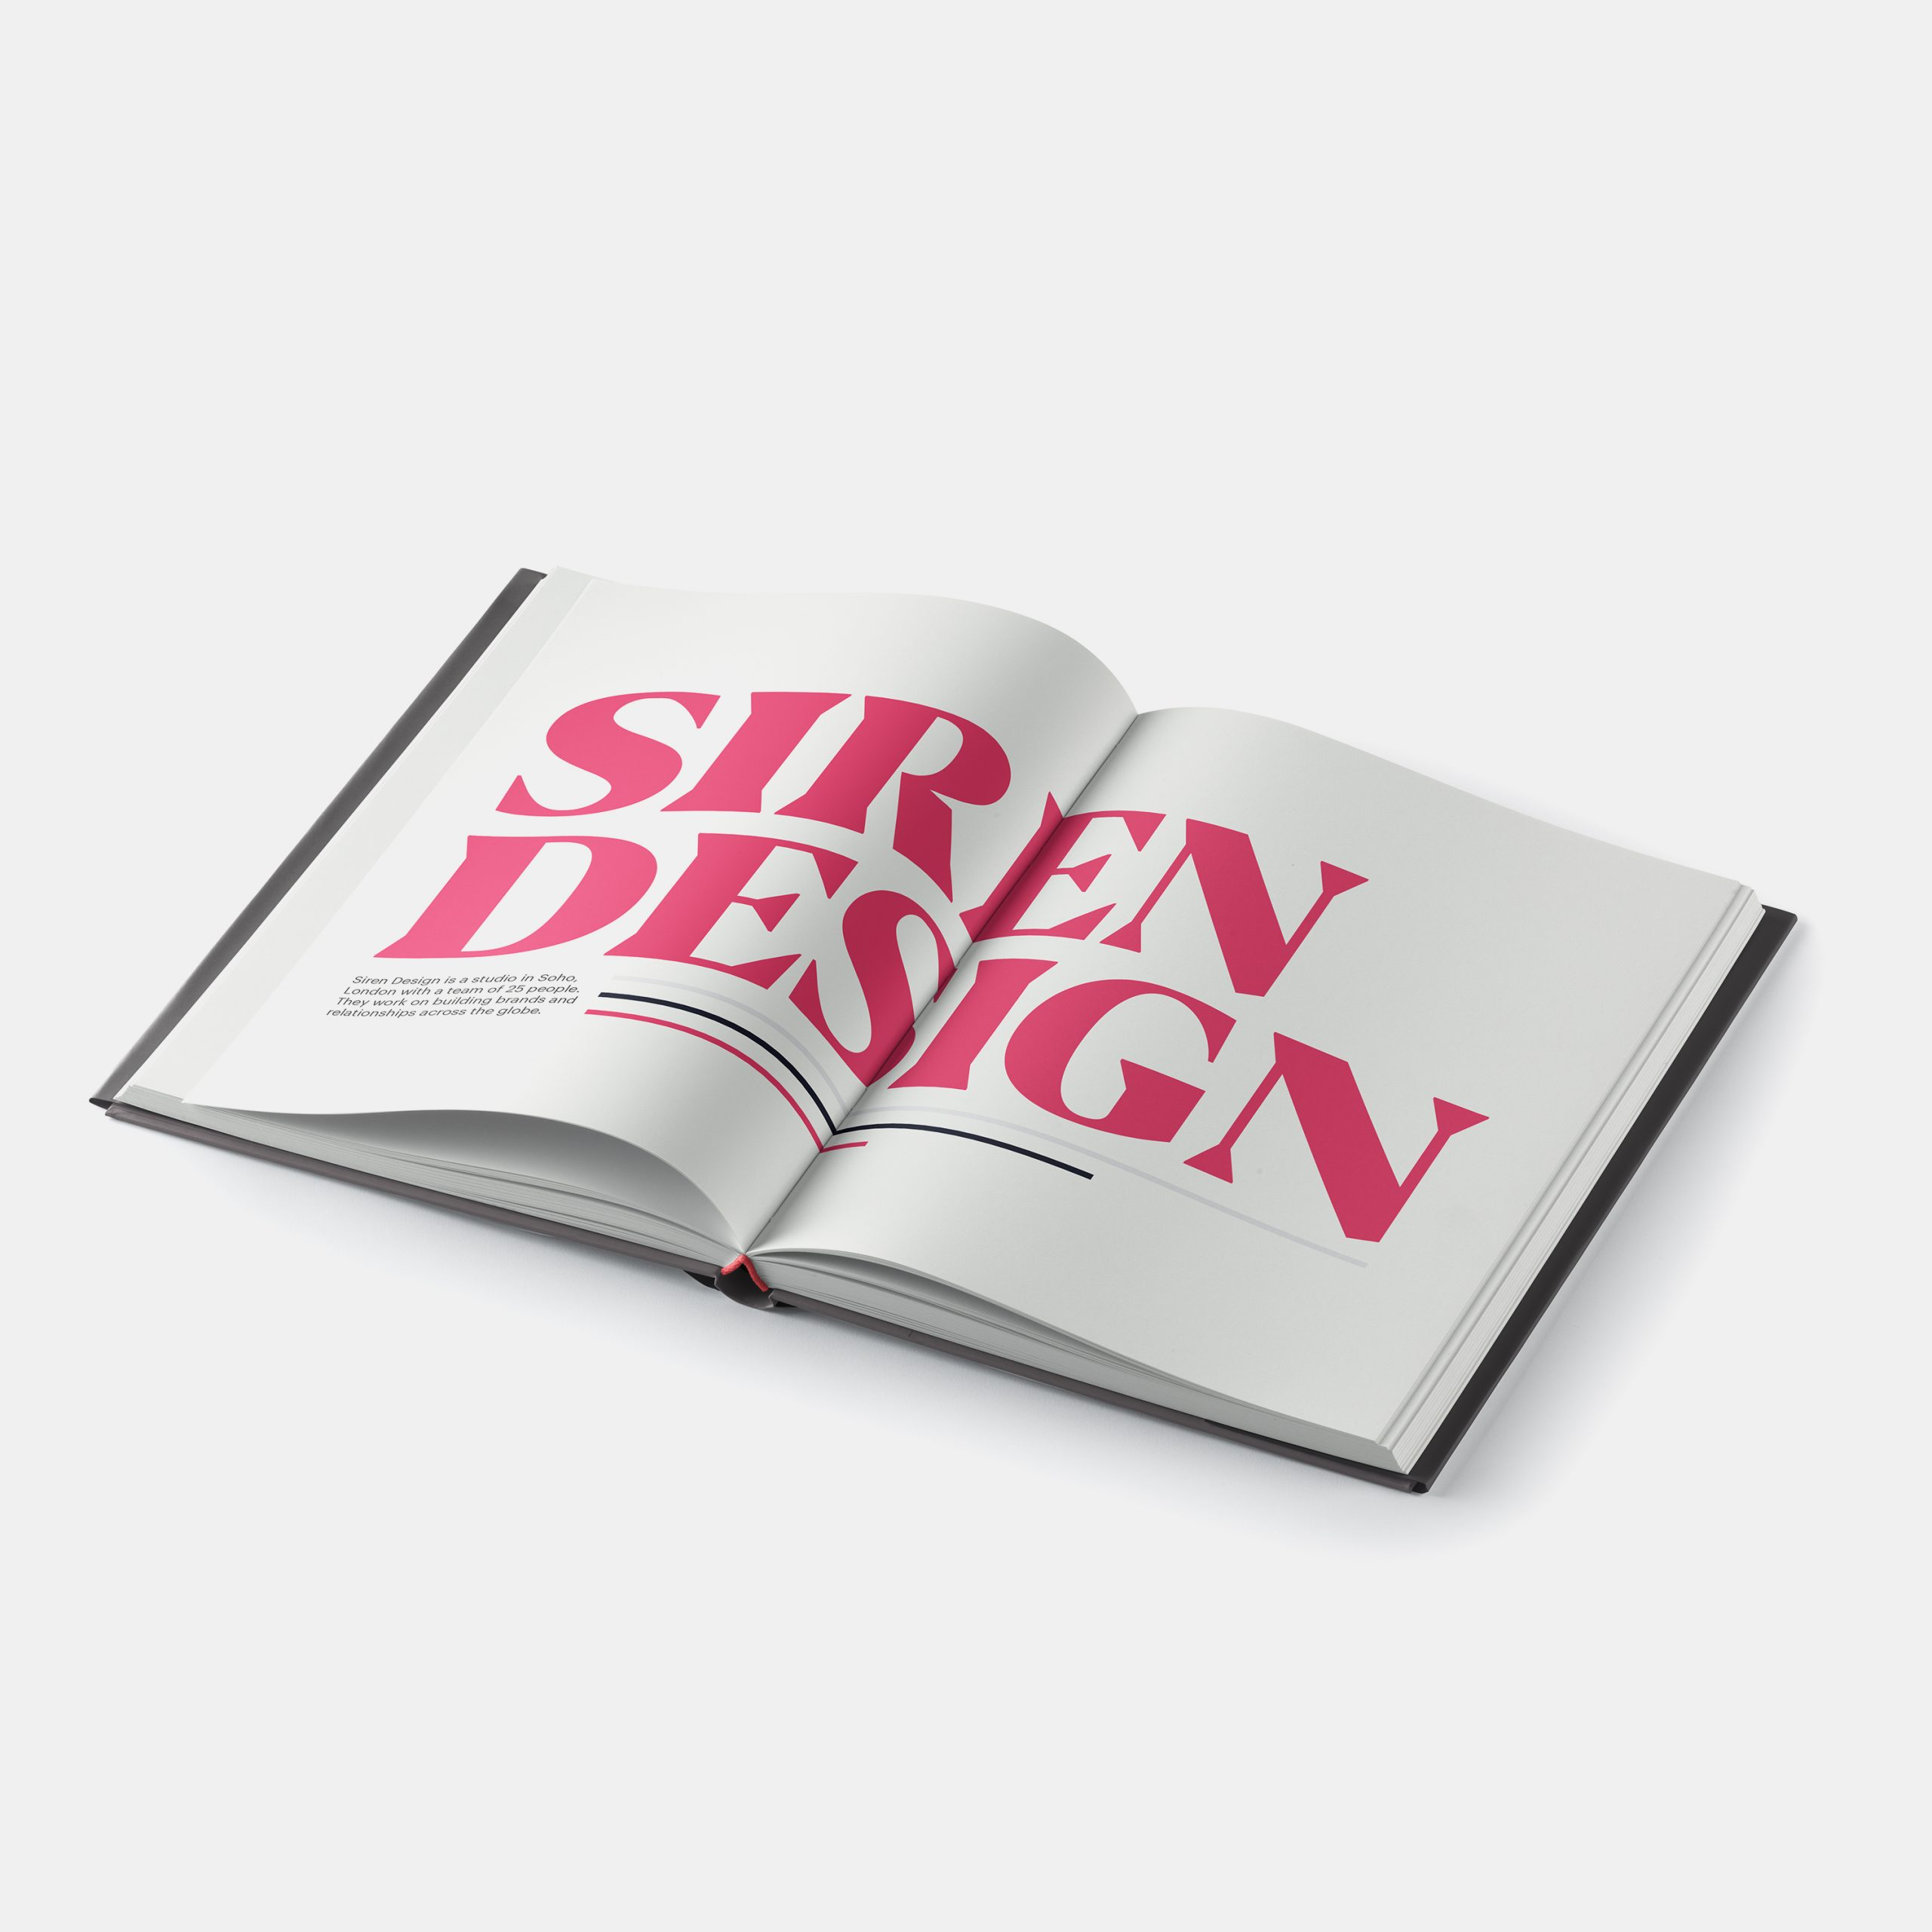 A two page spread at the start of Siren Design article